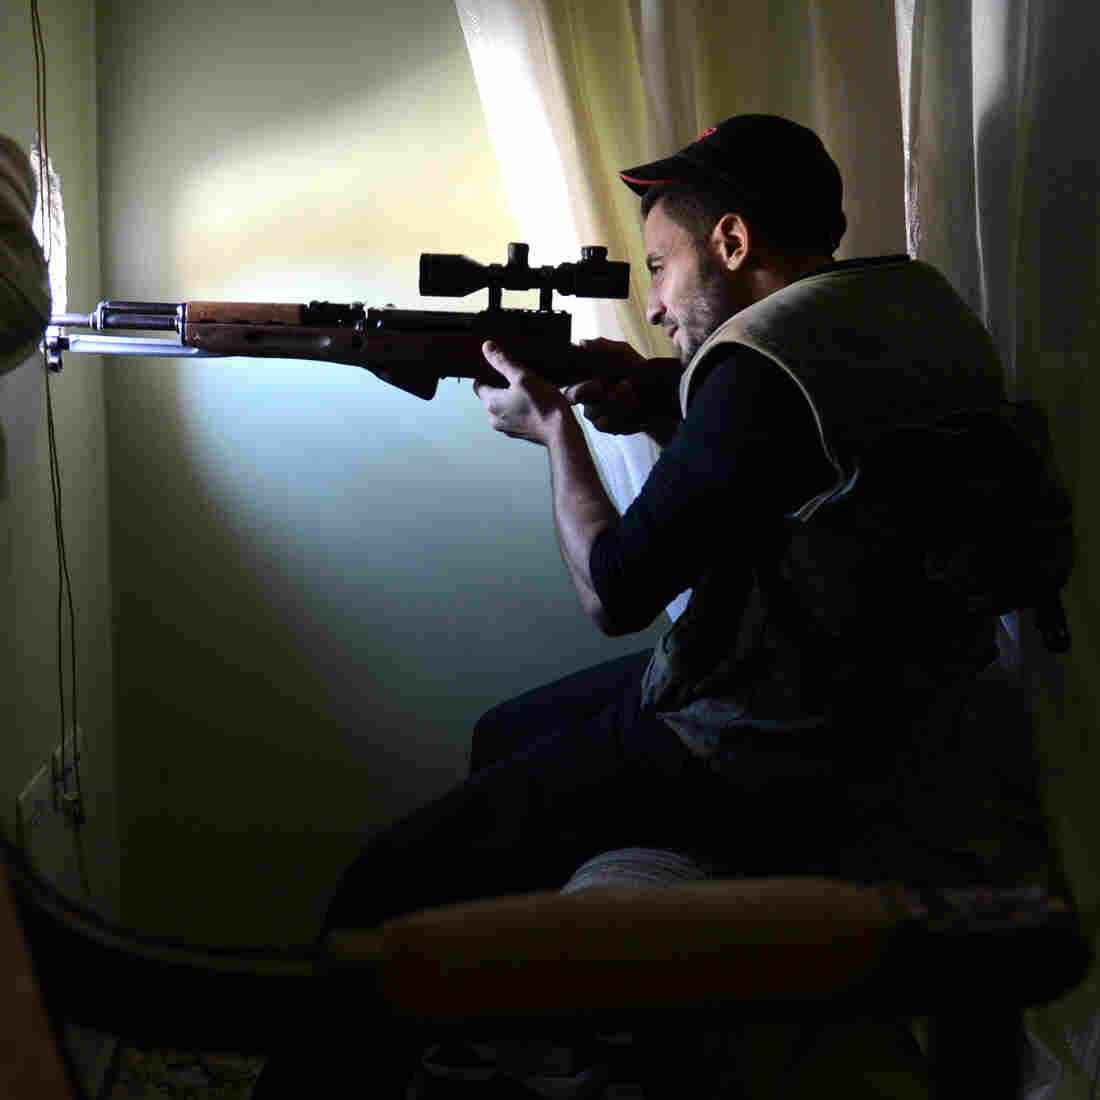 A Syrian rebel fighter takes aim at government forces from an apartment in the northern city of Aleppo on Saturday. While the fighting rages, the Syrian opposition is holding talks in Qatar in an attempt to create a new, more unified front. The U.S. announced last week that it favors an overhaul of the opposition leadership.